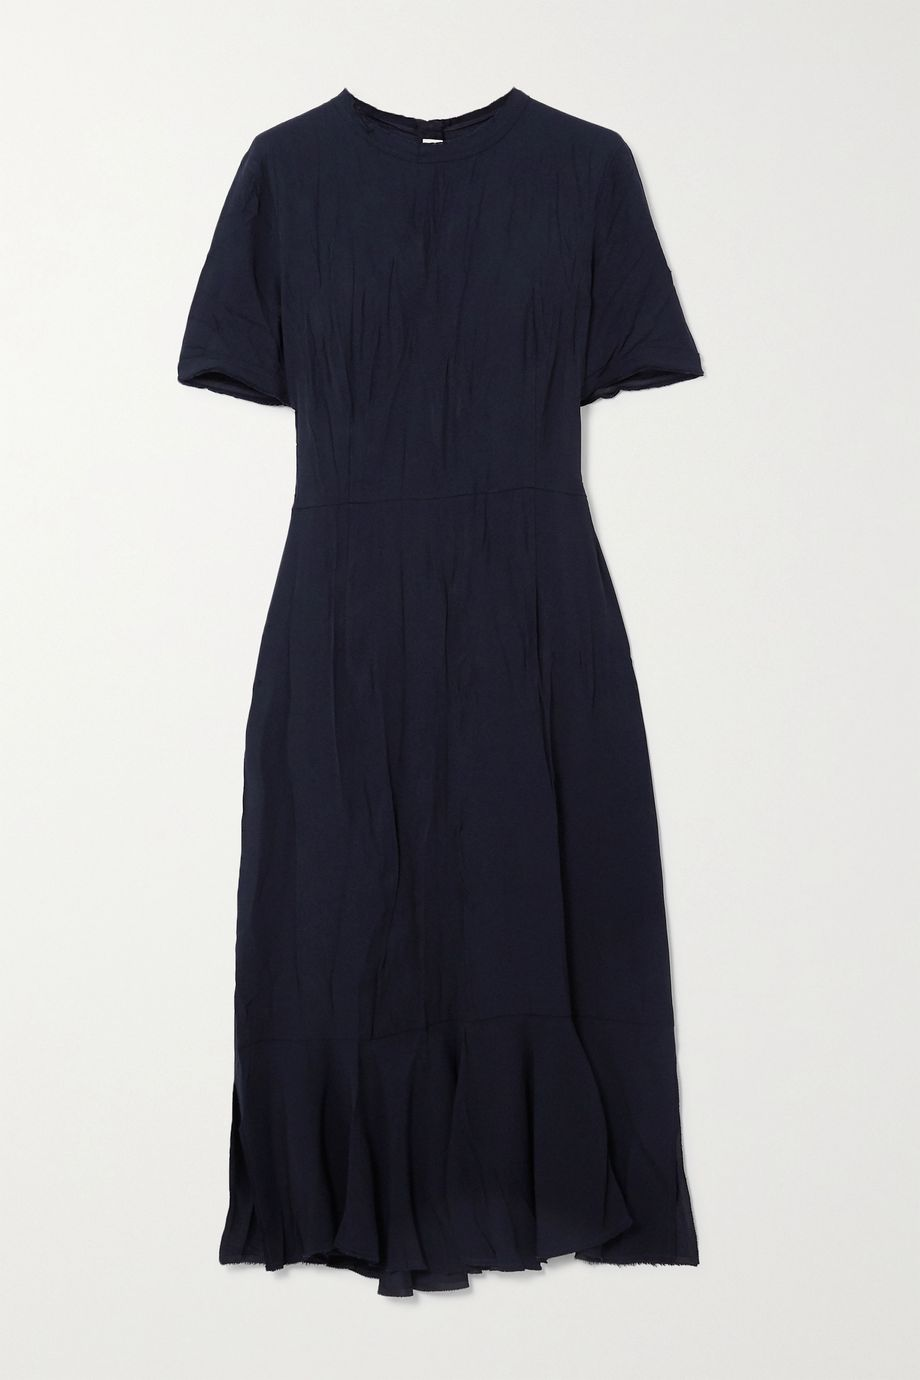 Marni Crinkled-cady midi dress